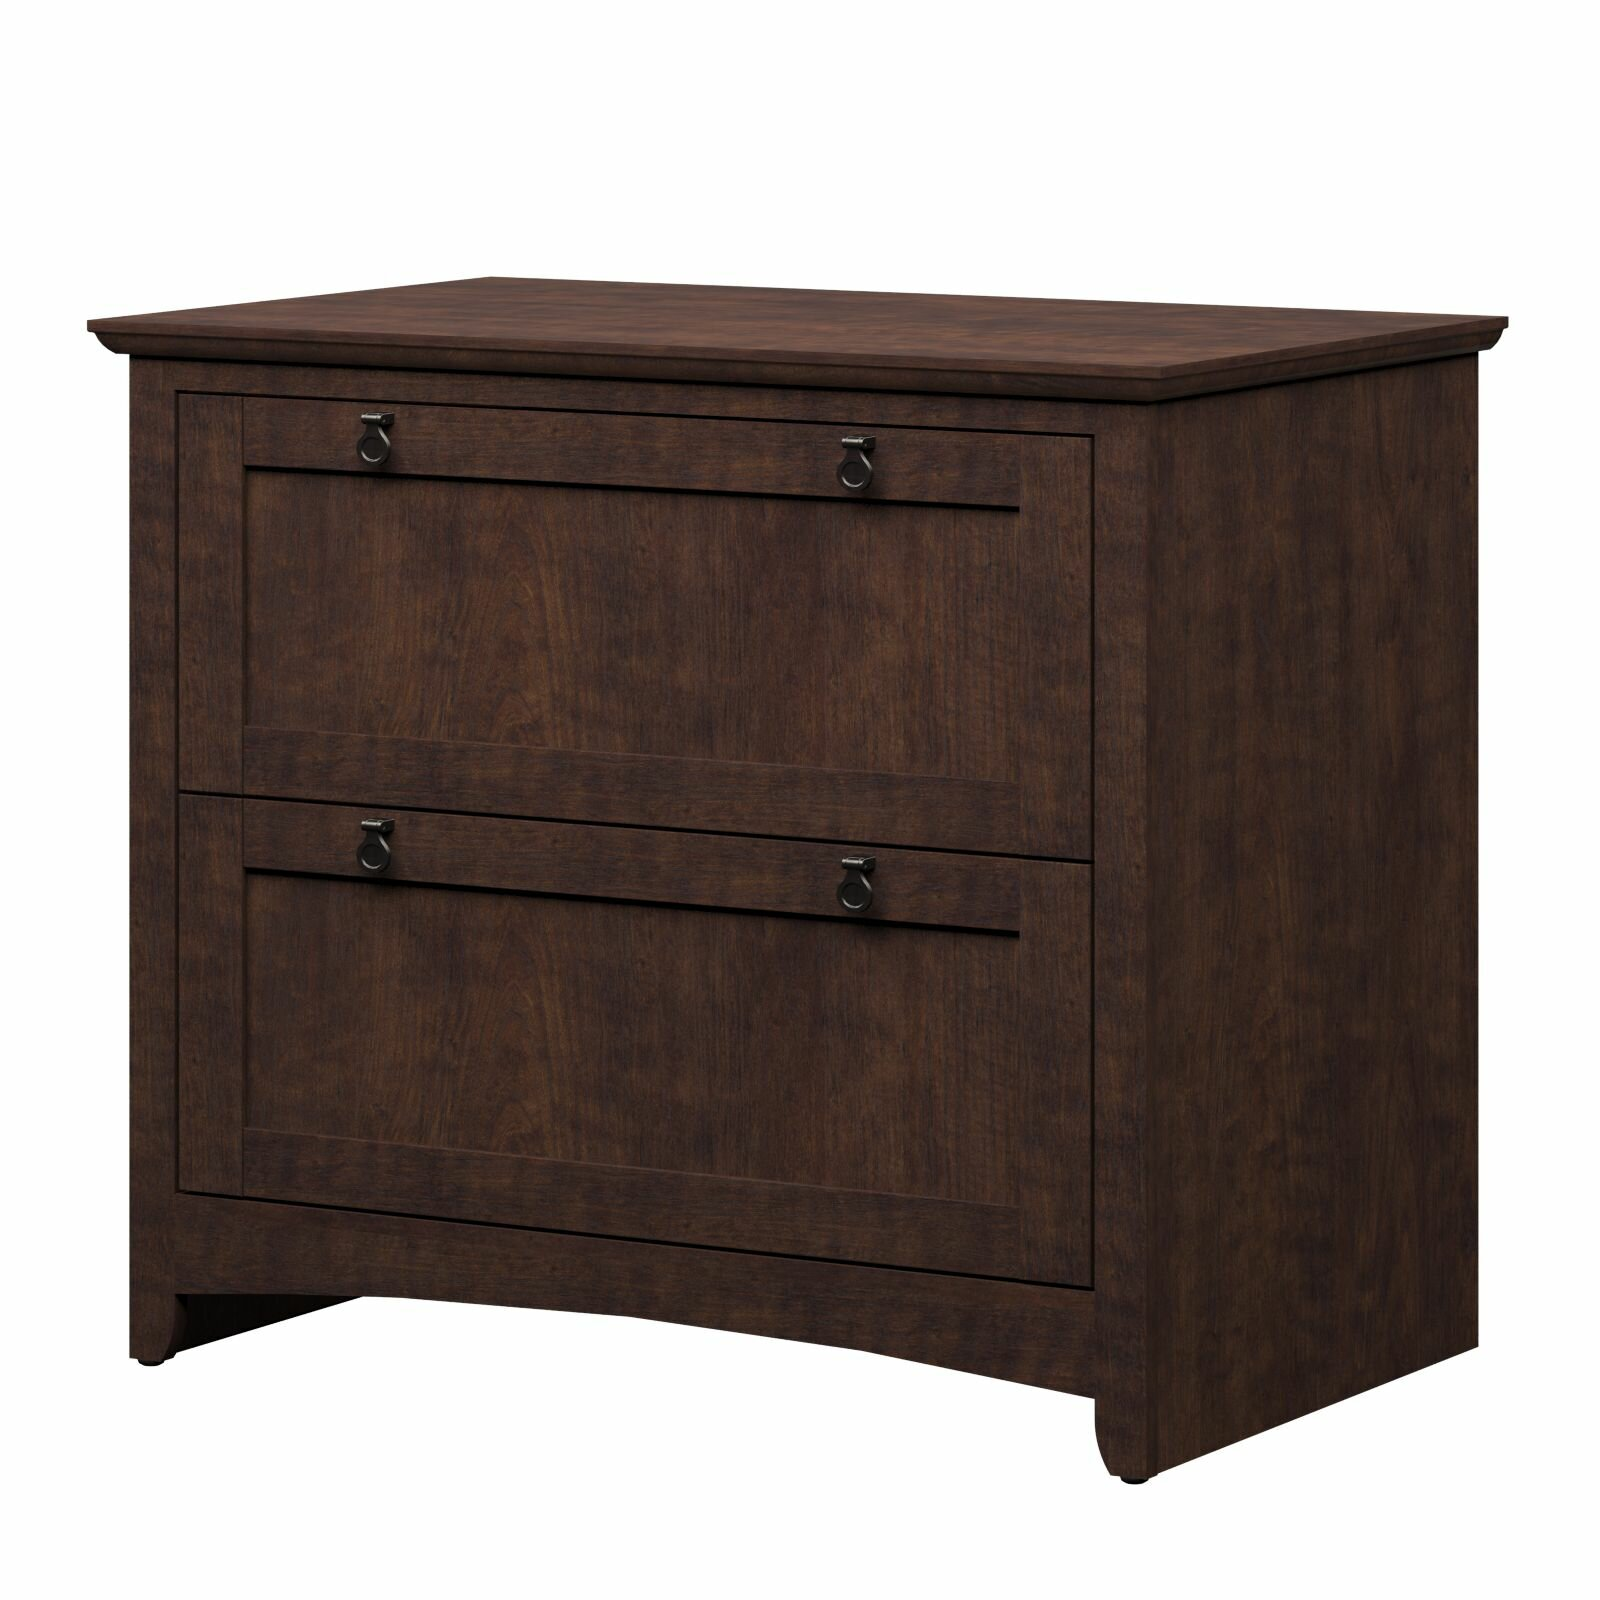 Horizontal Filing Cabinet Darby Home Co Buena Vista 2 Drawer Lateral Filing Cabinet